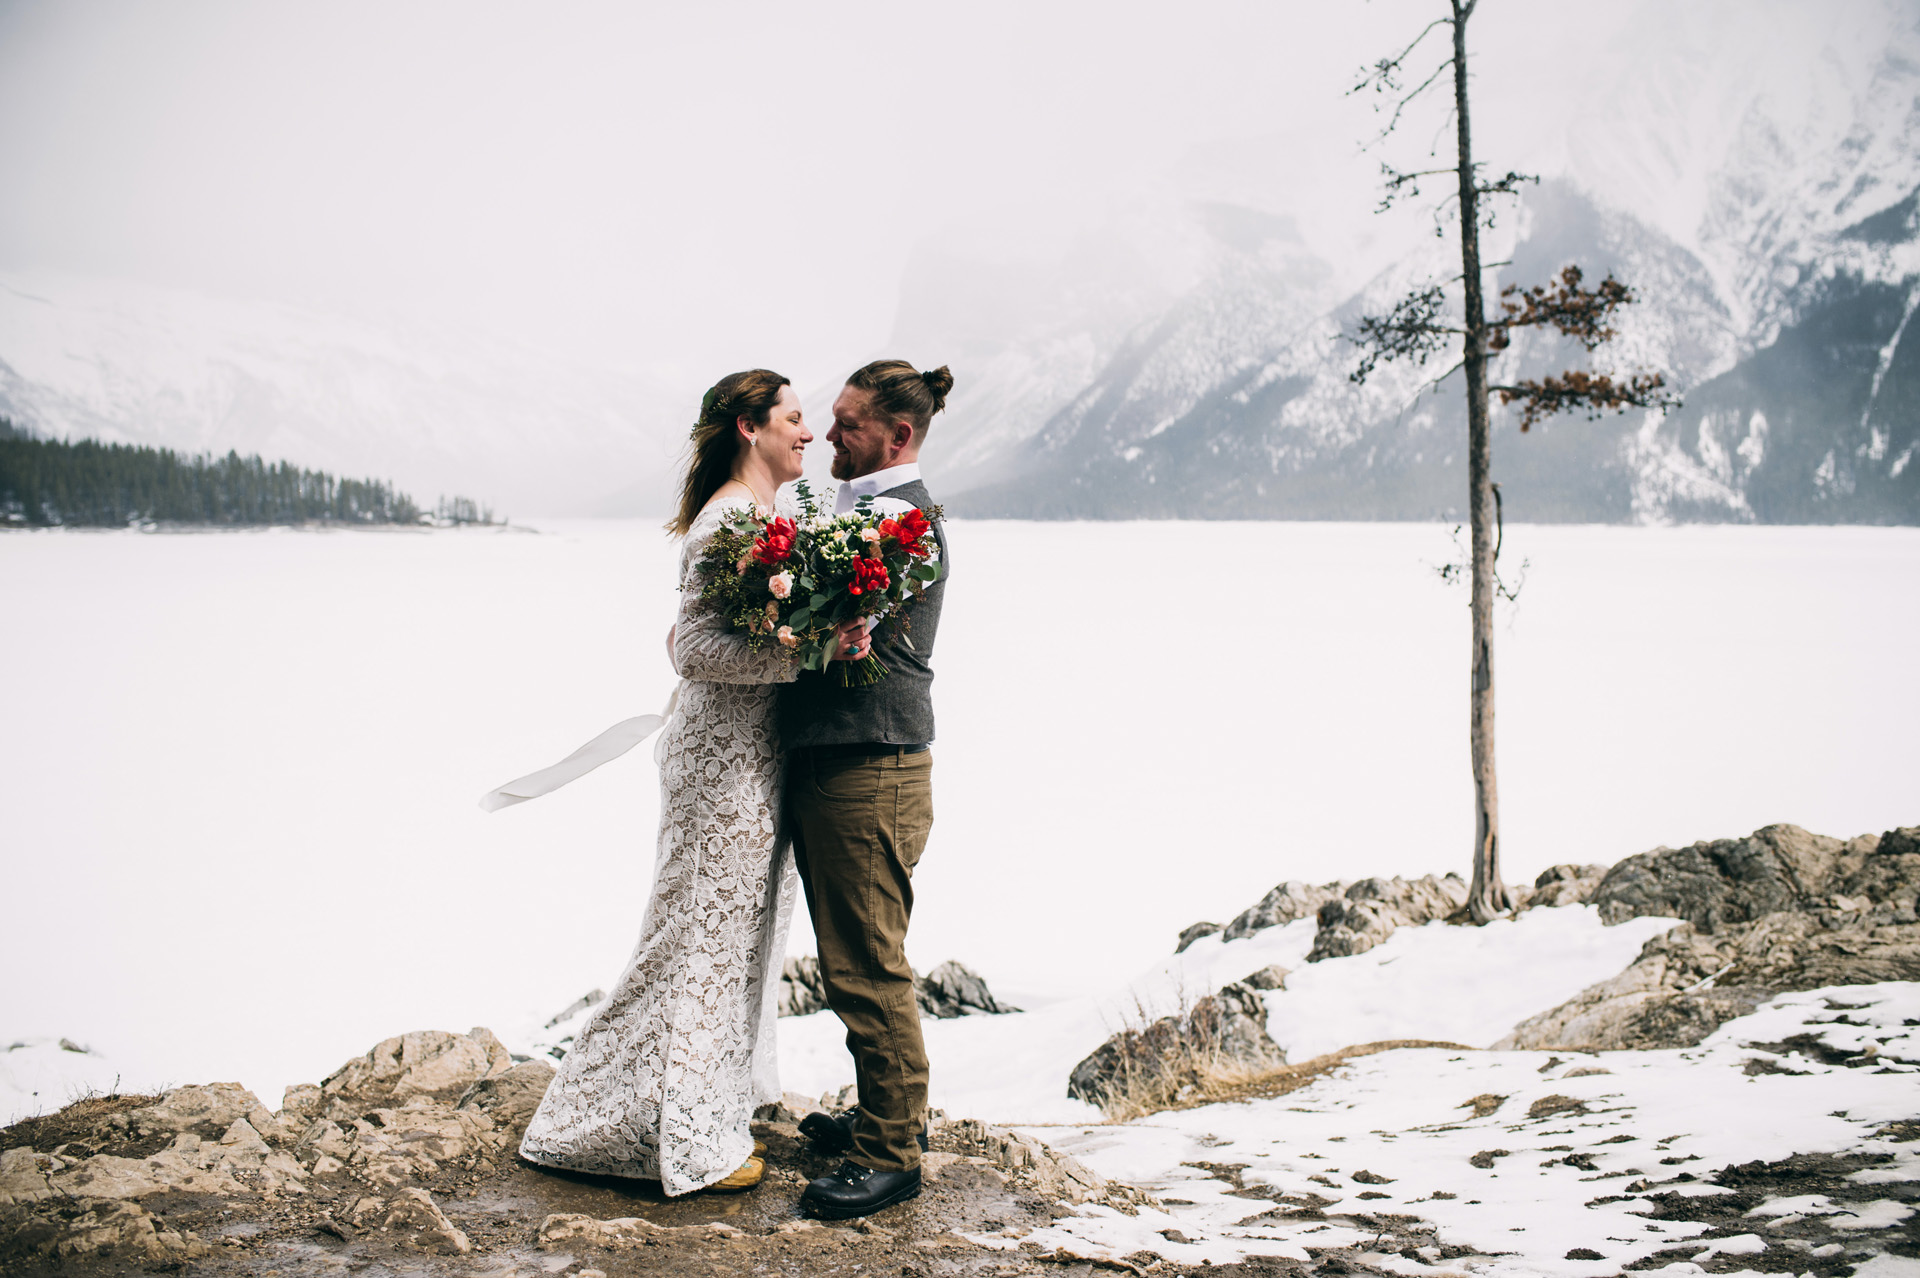 banff-wedding-photographer-29